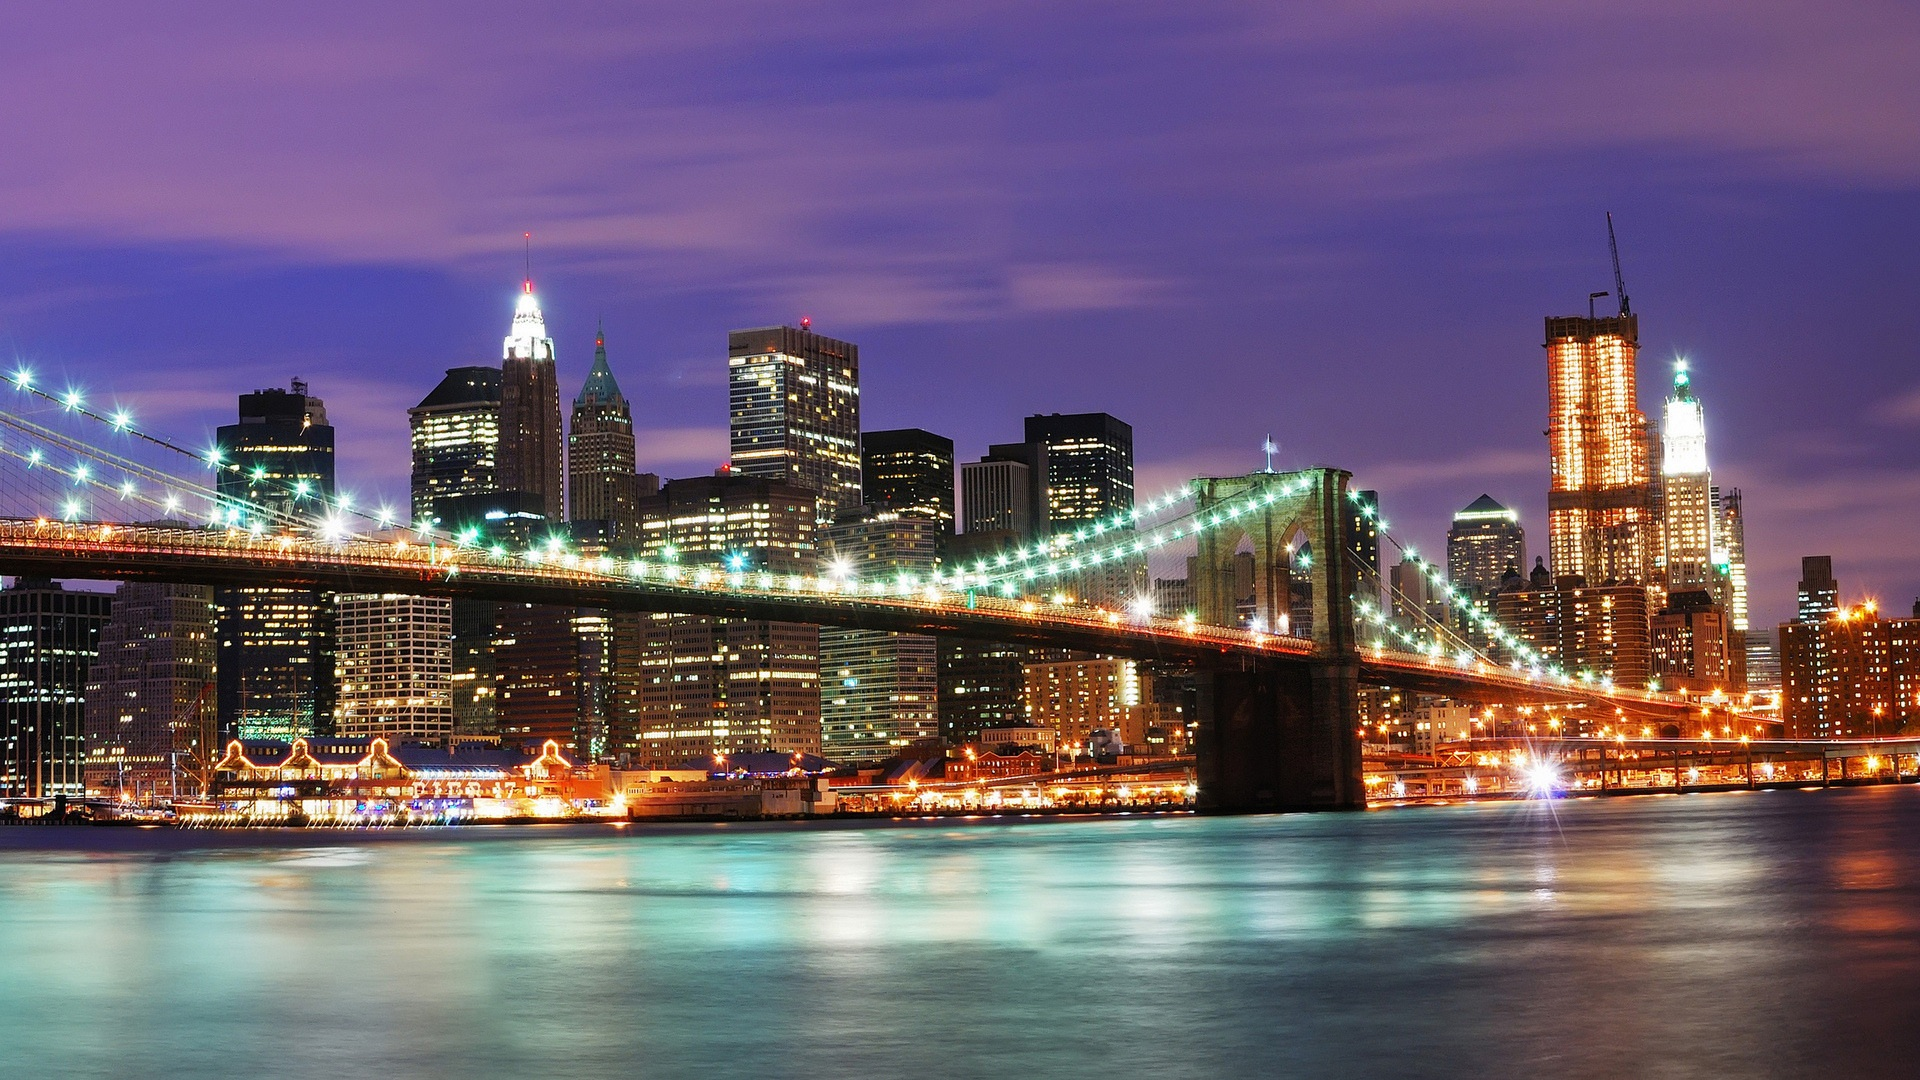 Wallpaper United States New York City Night 1920x1200 HD Picture Image